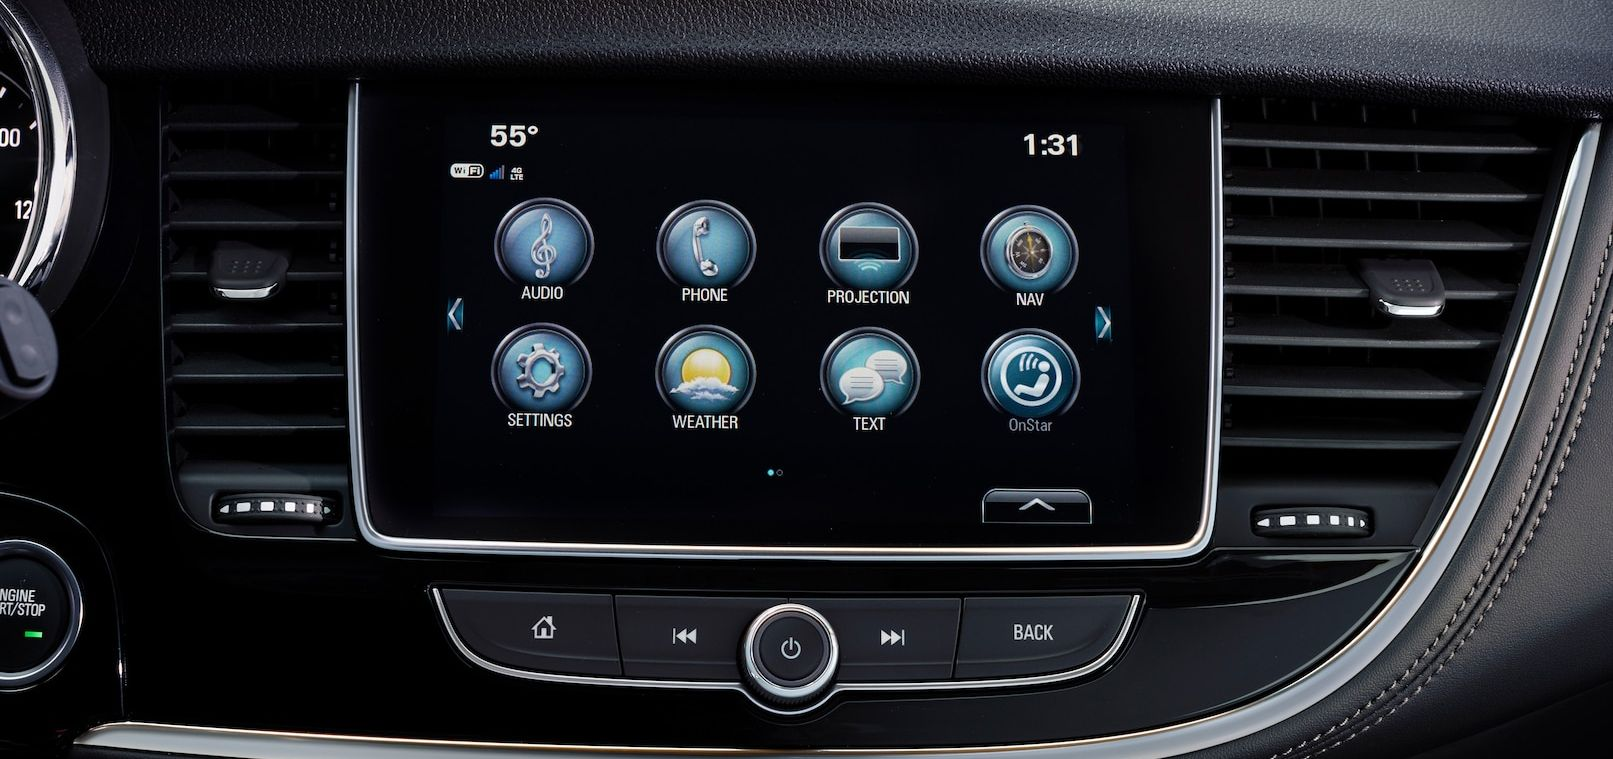 Infotainment in the 2019 Buick Encore